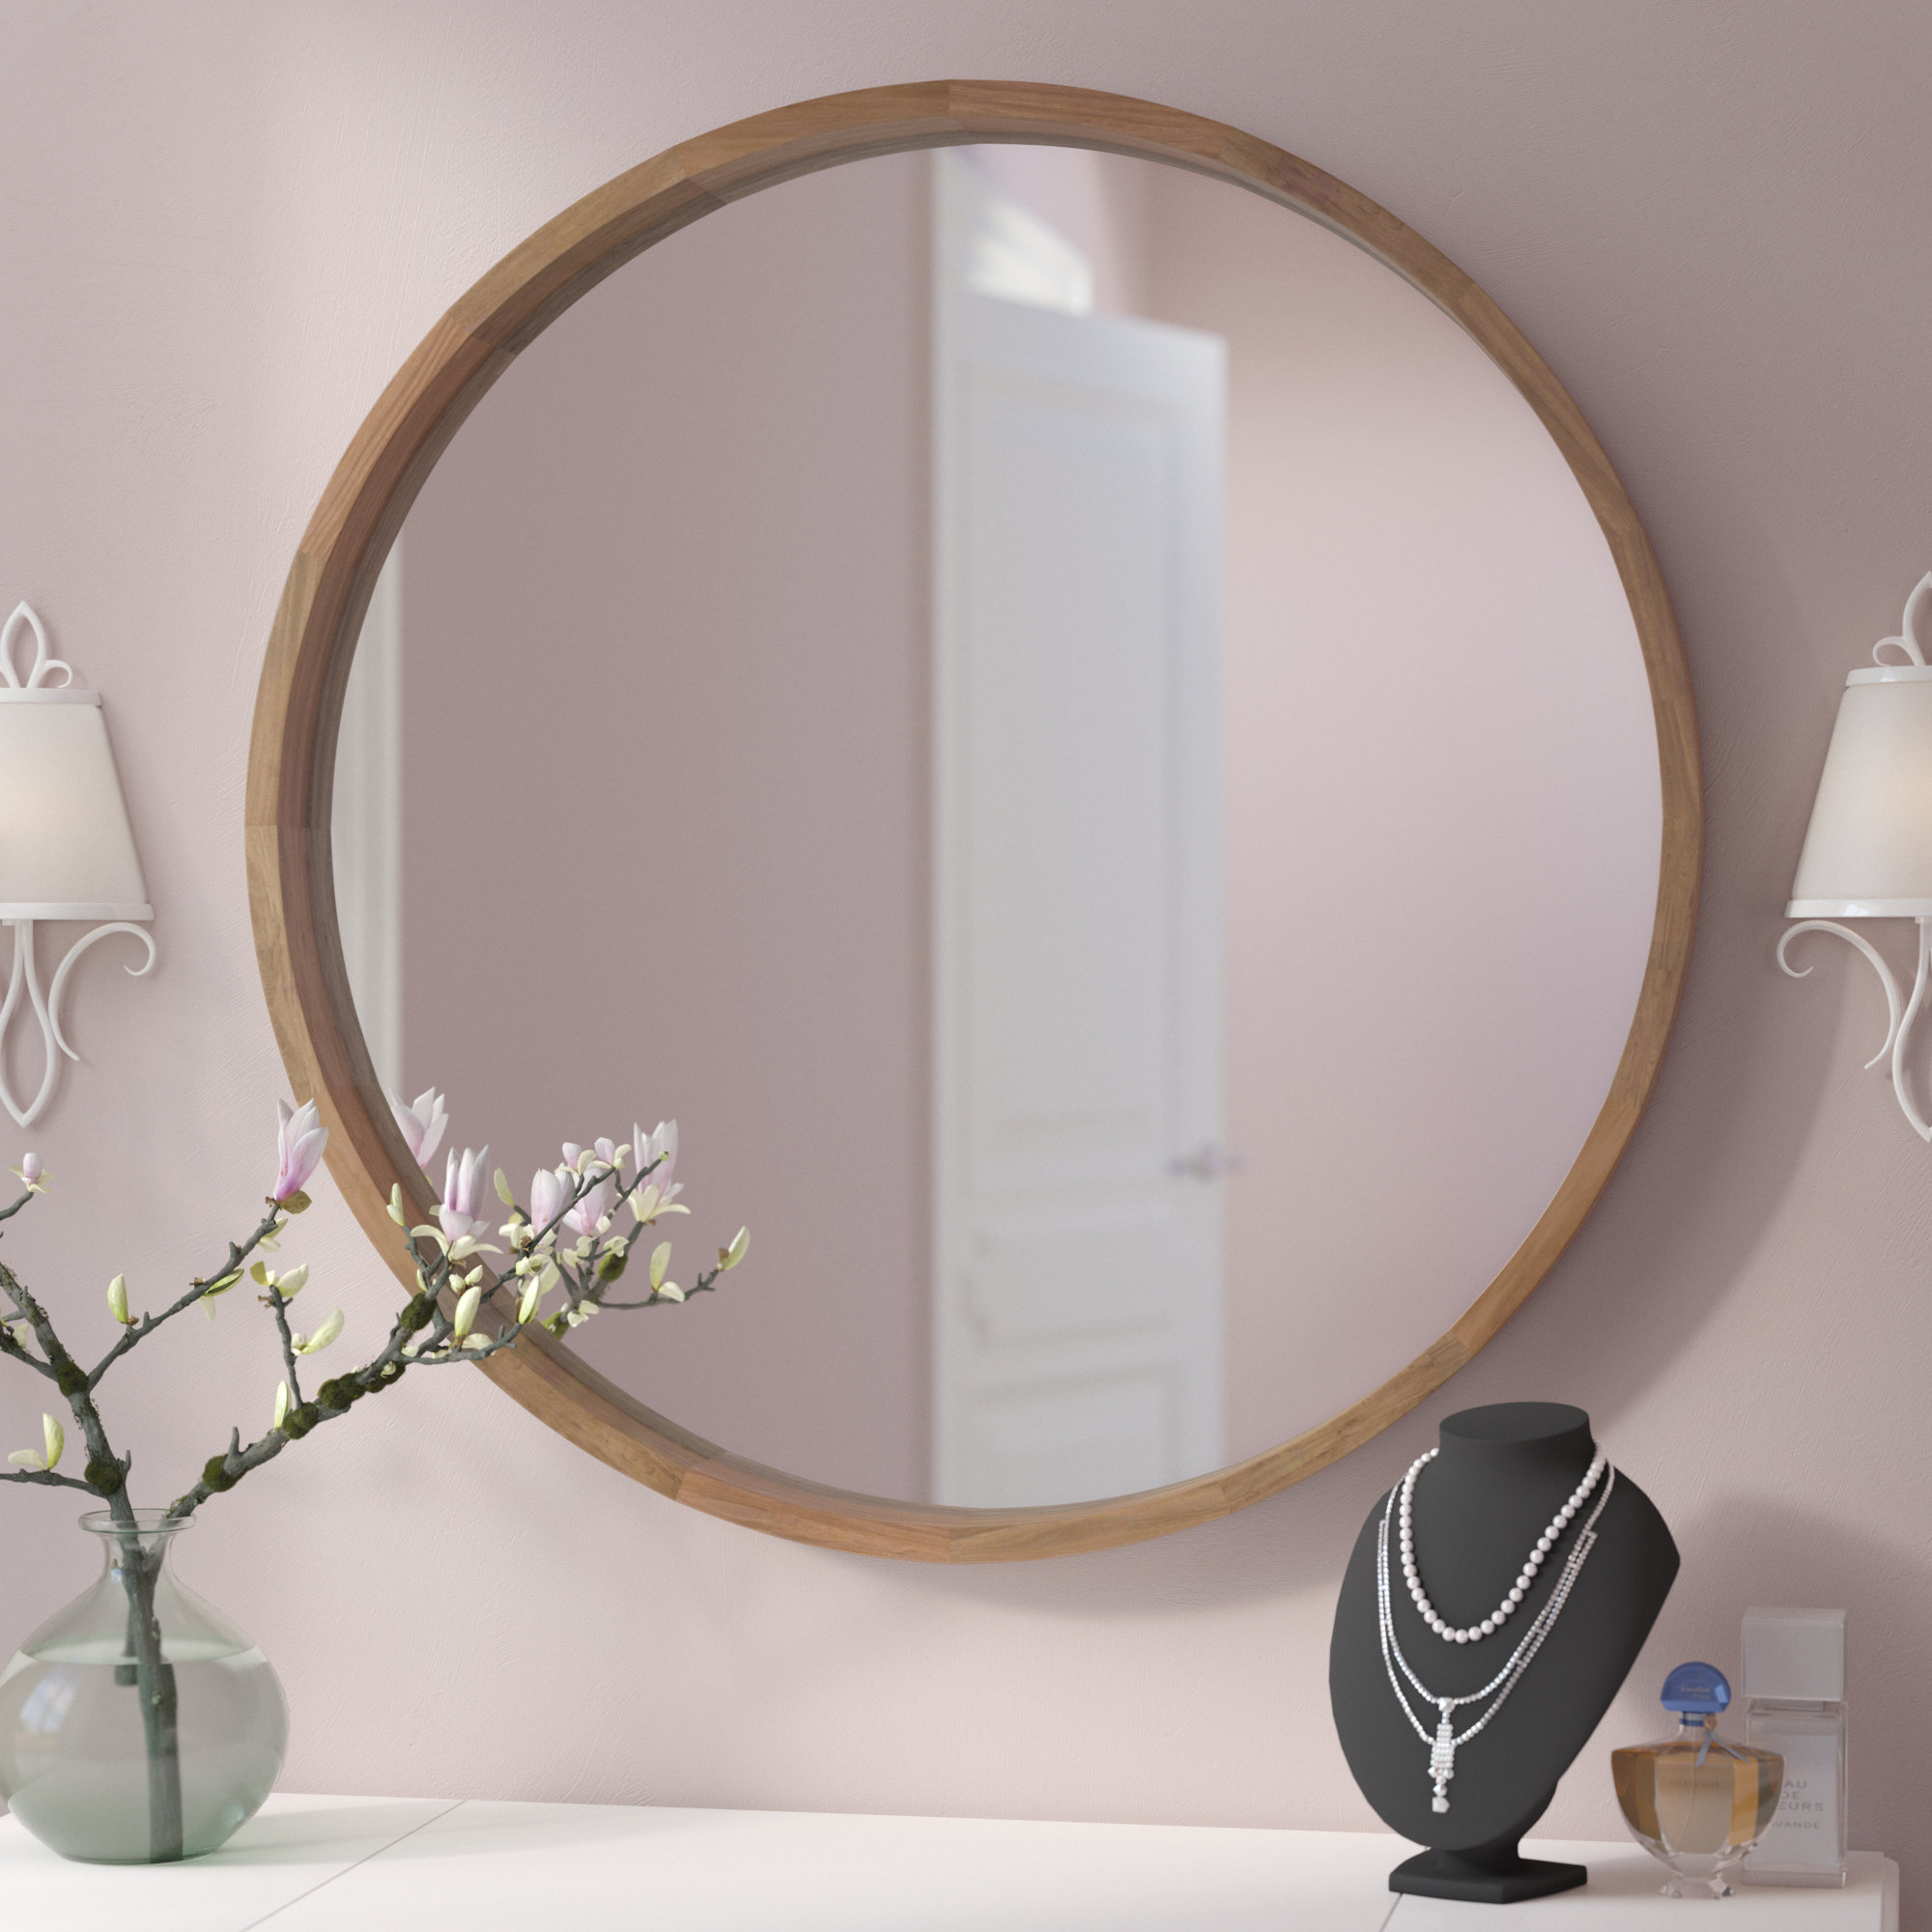 Cream Wall Mirror | Wayfair Regarding Pfister Oval Wood Wall Mirrors (Image 3 of 20)